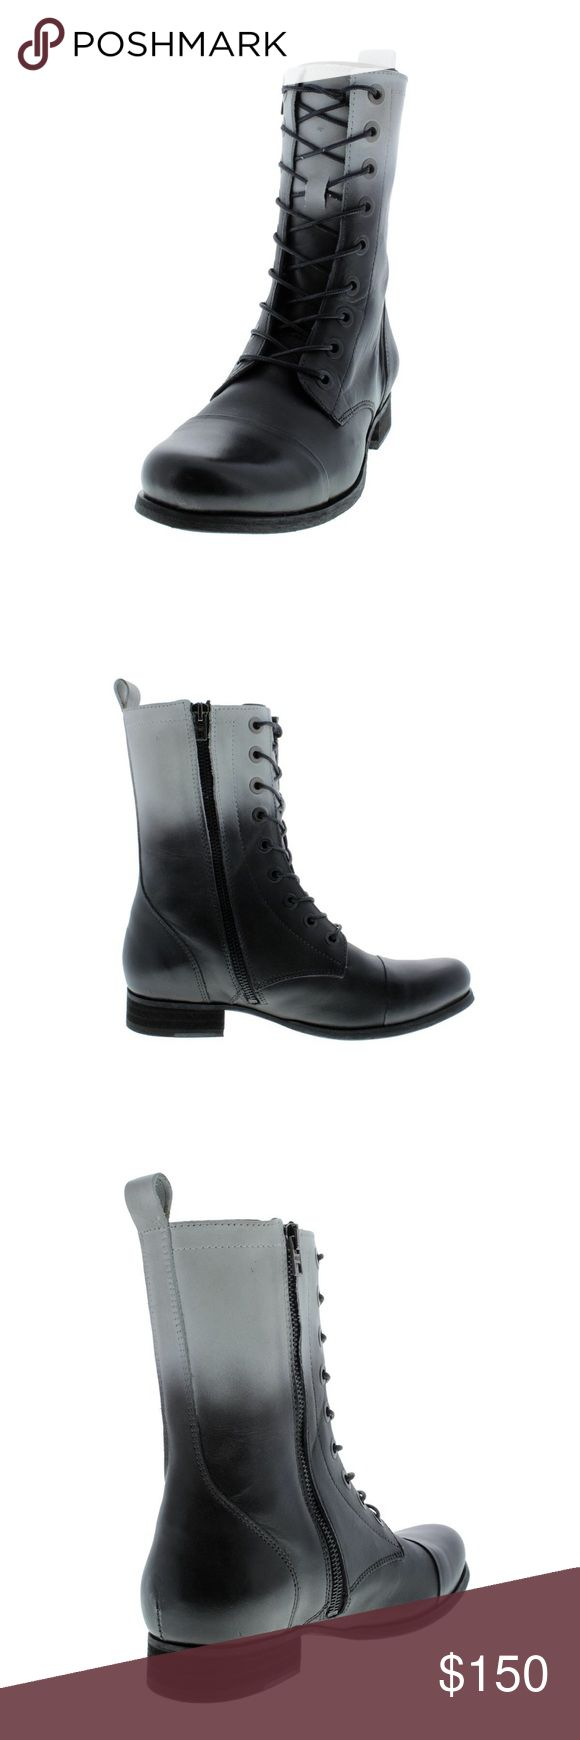 DIESEL The Wild Land Arthik Leather Combat Boots DIESEL The Wild Land Arthik Leather Combat Boots Black white Size 9 Lace Up Diesel Shoes Ankle Boots & Booties